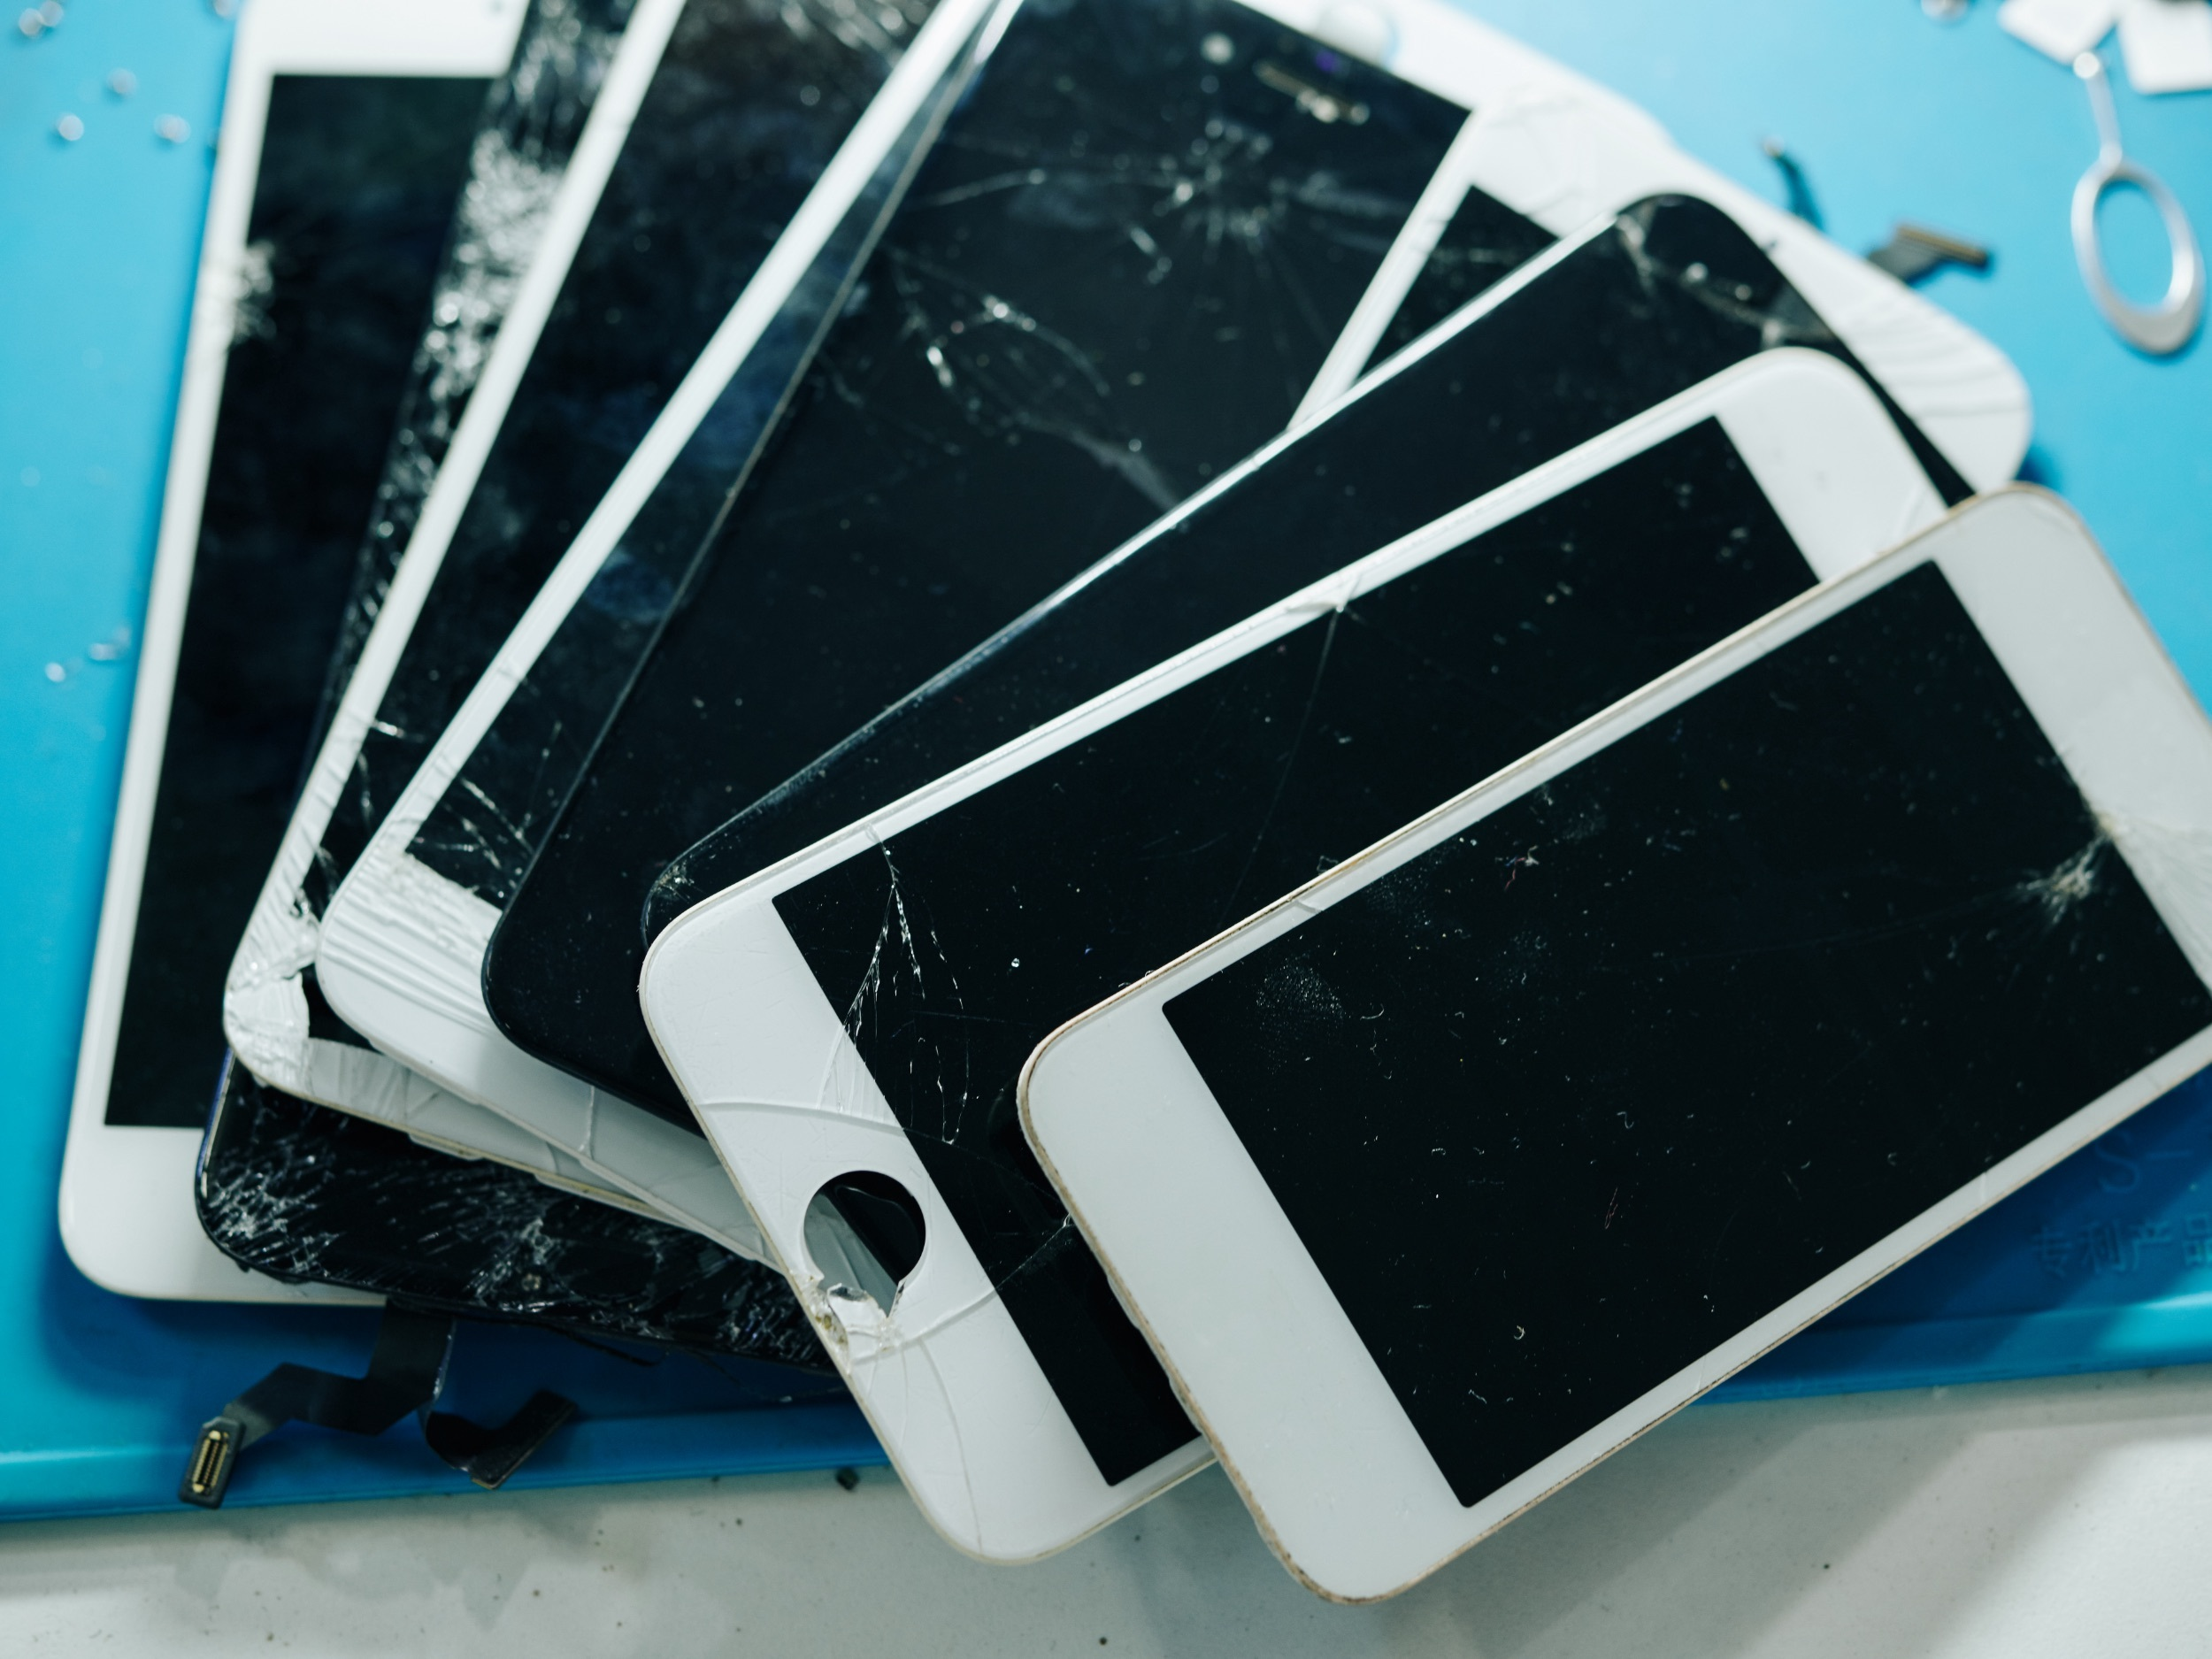 several smartphones with broken or cracked screens